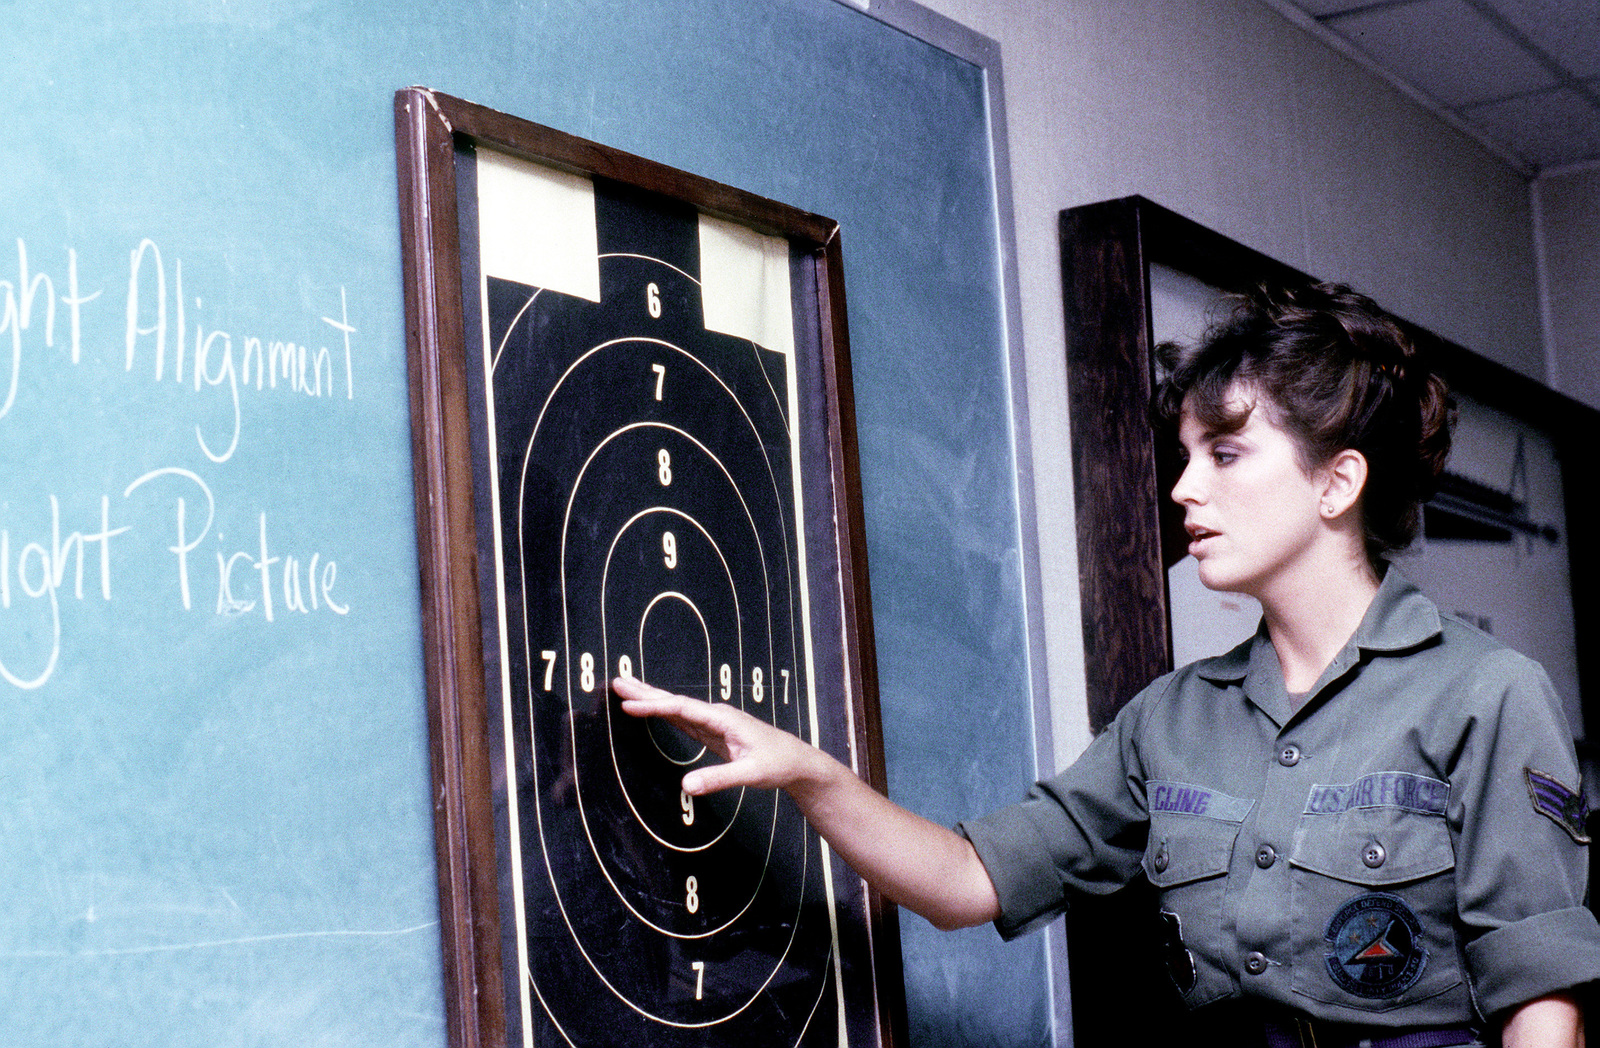 Sgt. Susan M. Cline, 833rd Security Police Squadron, combat arms training and maintenance specialist, points out score placement on a target